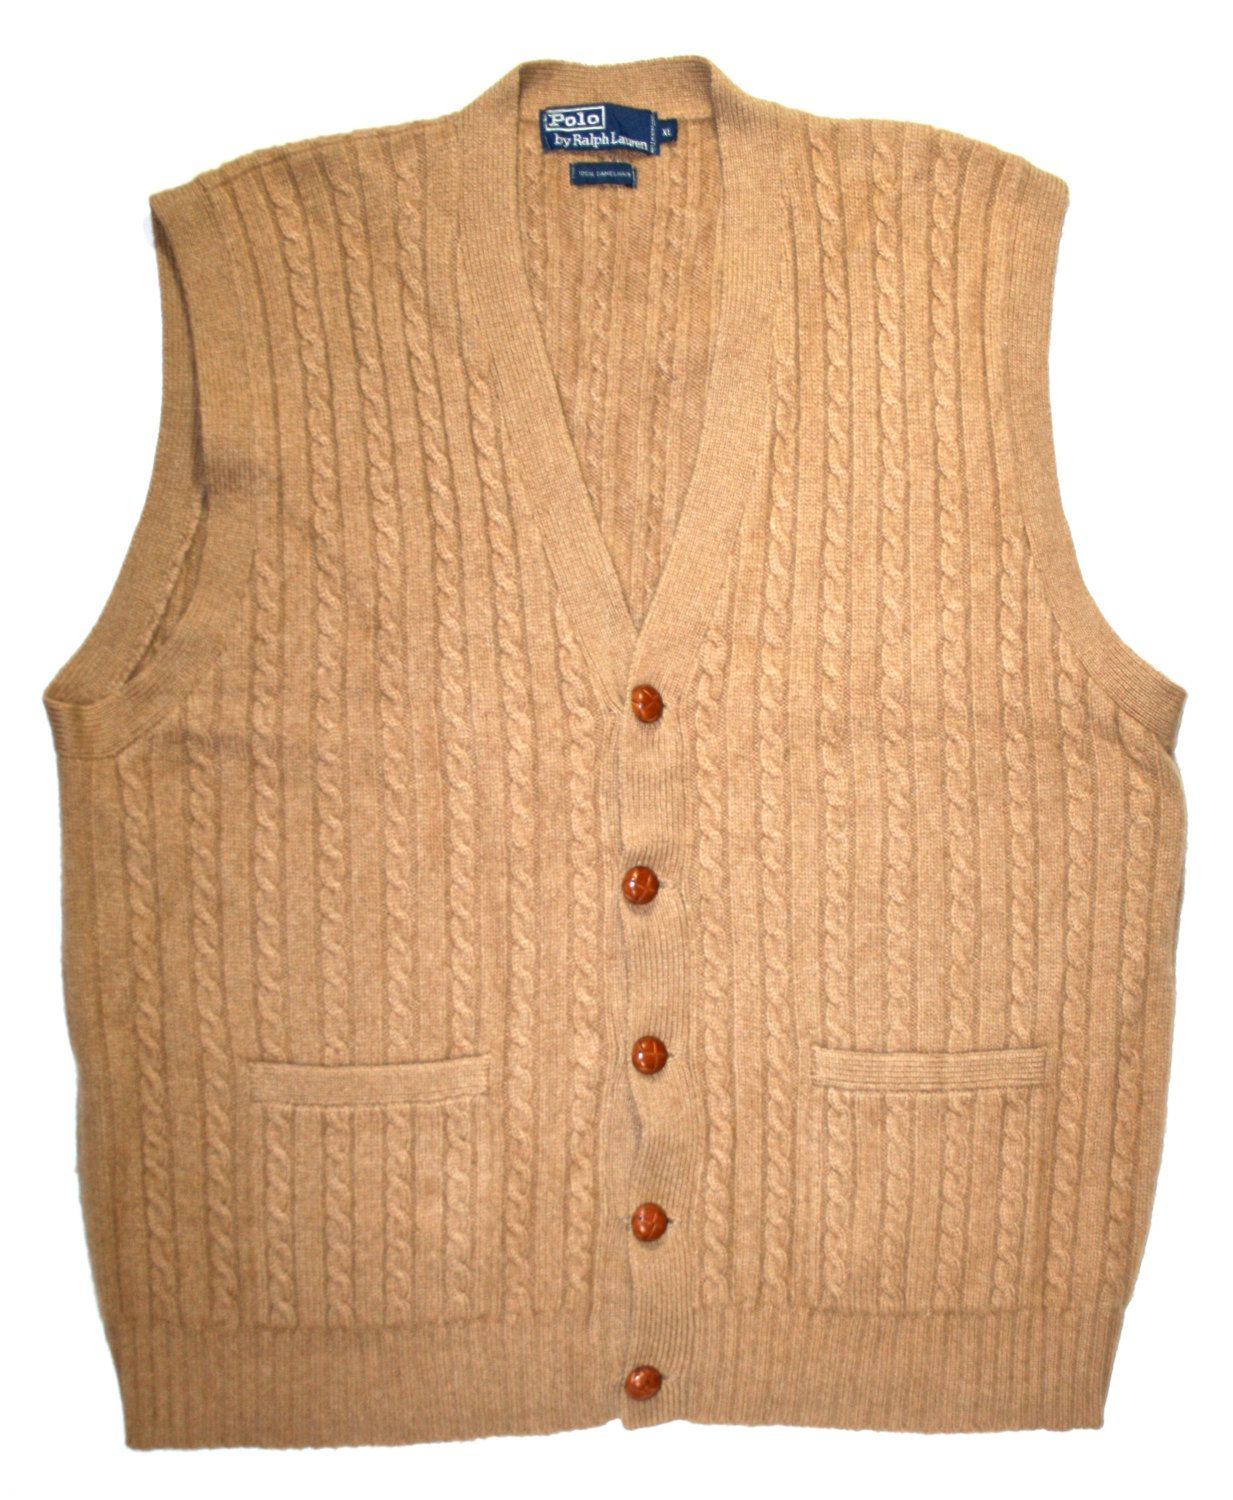 Vintage Polo by Ralph Lauren Camel Hair Sweater Vest Mens Size XL ...